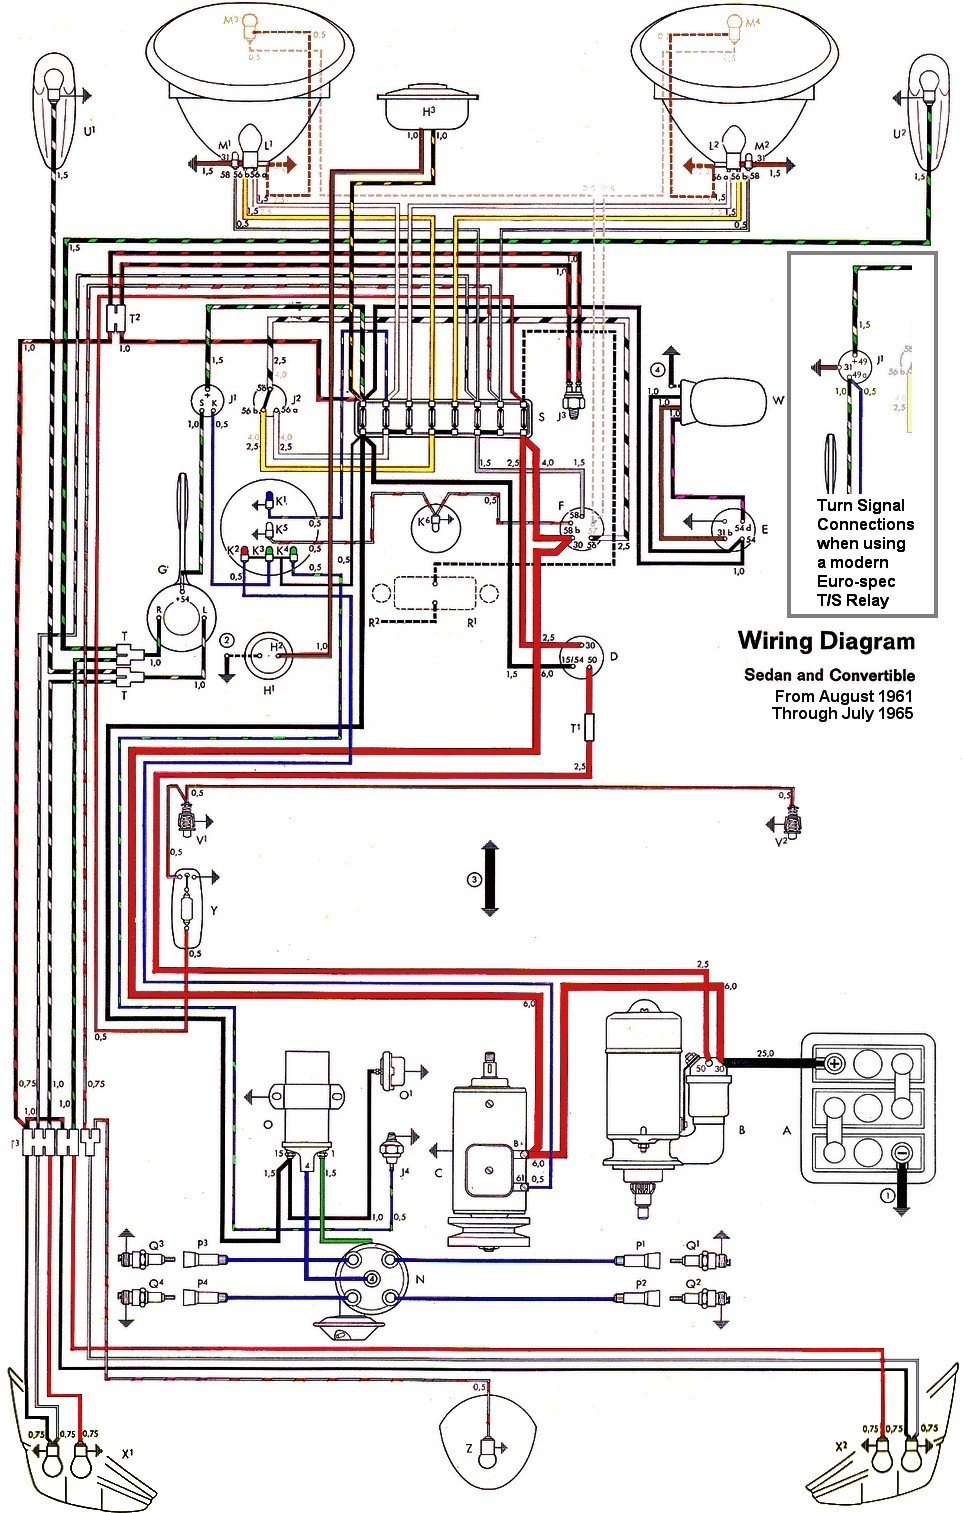 bug_62 65withinset wiring diagram vw beetle sedan and convertible 1961 1965 vw 1970 vw beetle electrical wiring diagram at soozxer.org